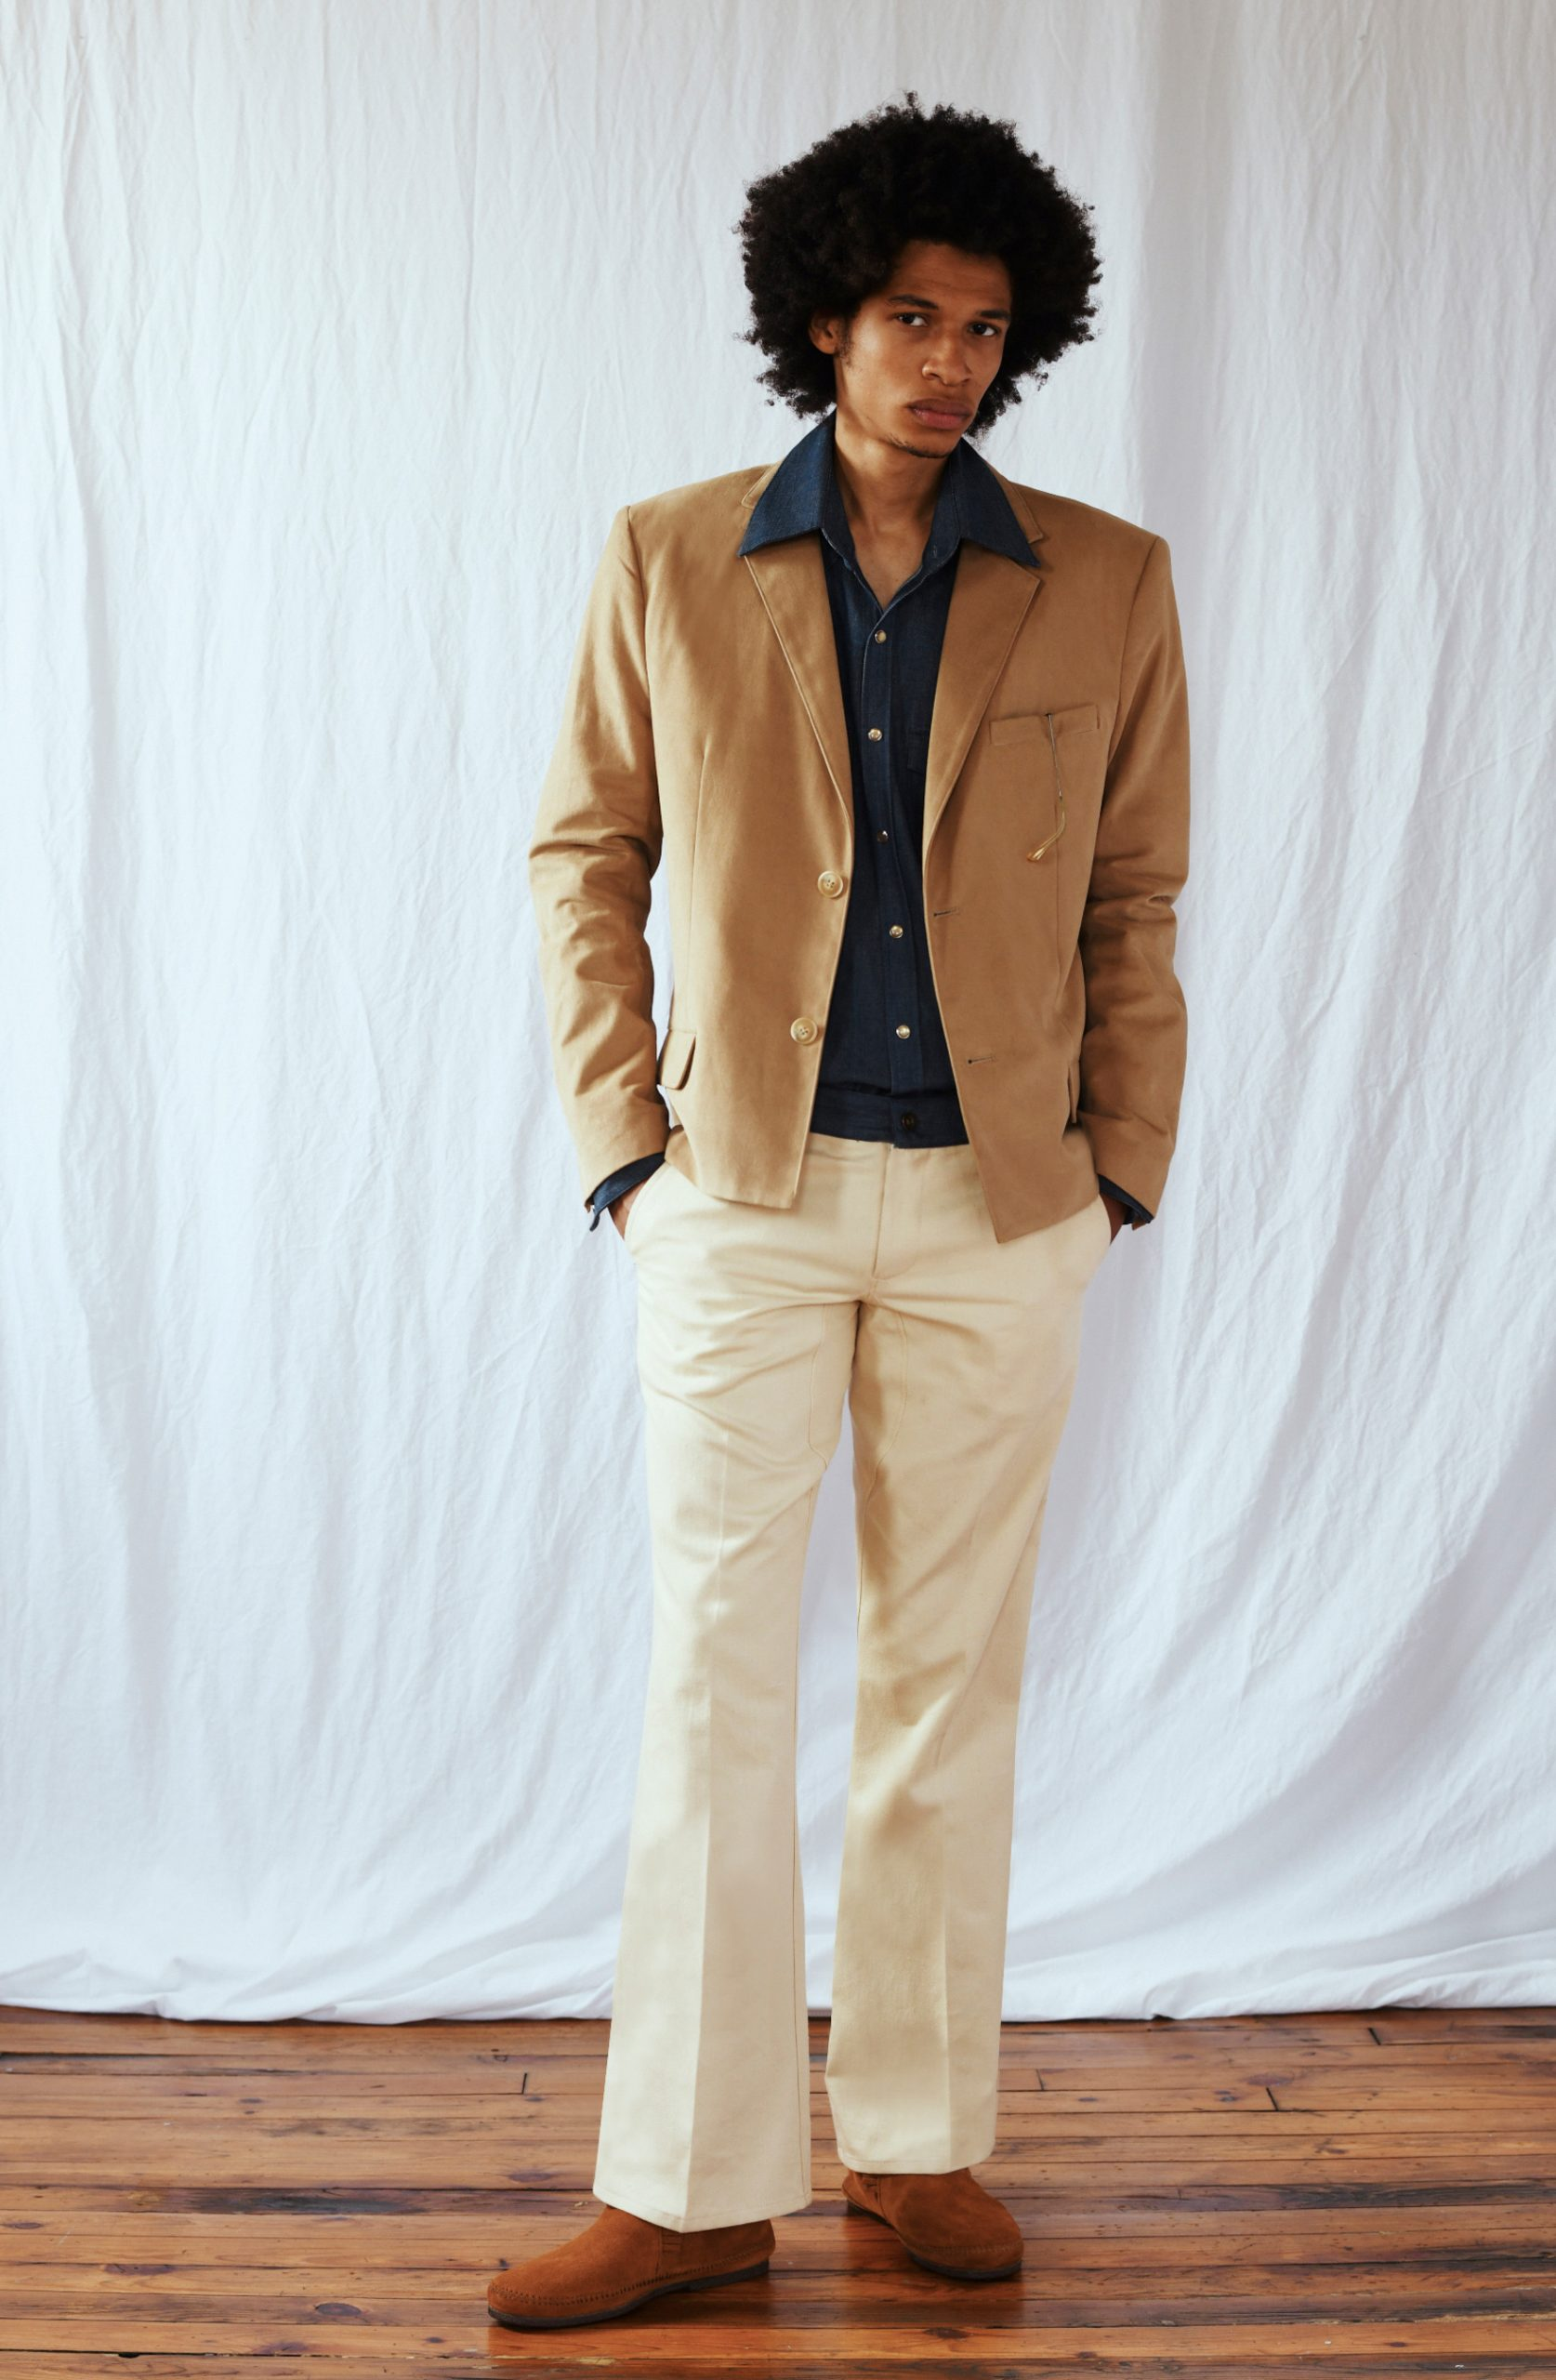 Review of Men's Day Of NYFW Spring 2021 fashion shows